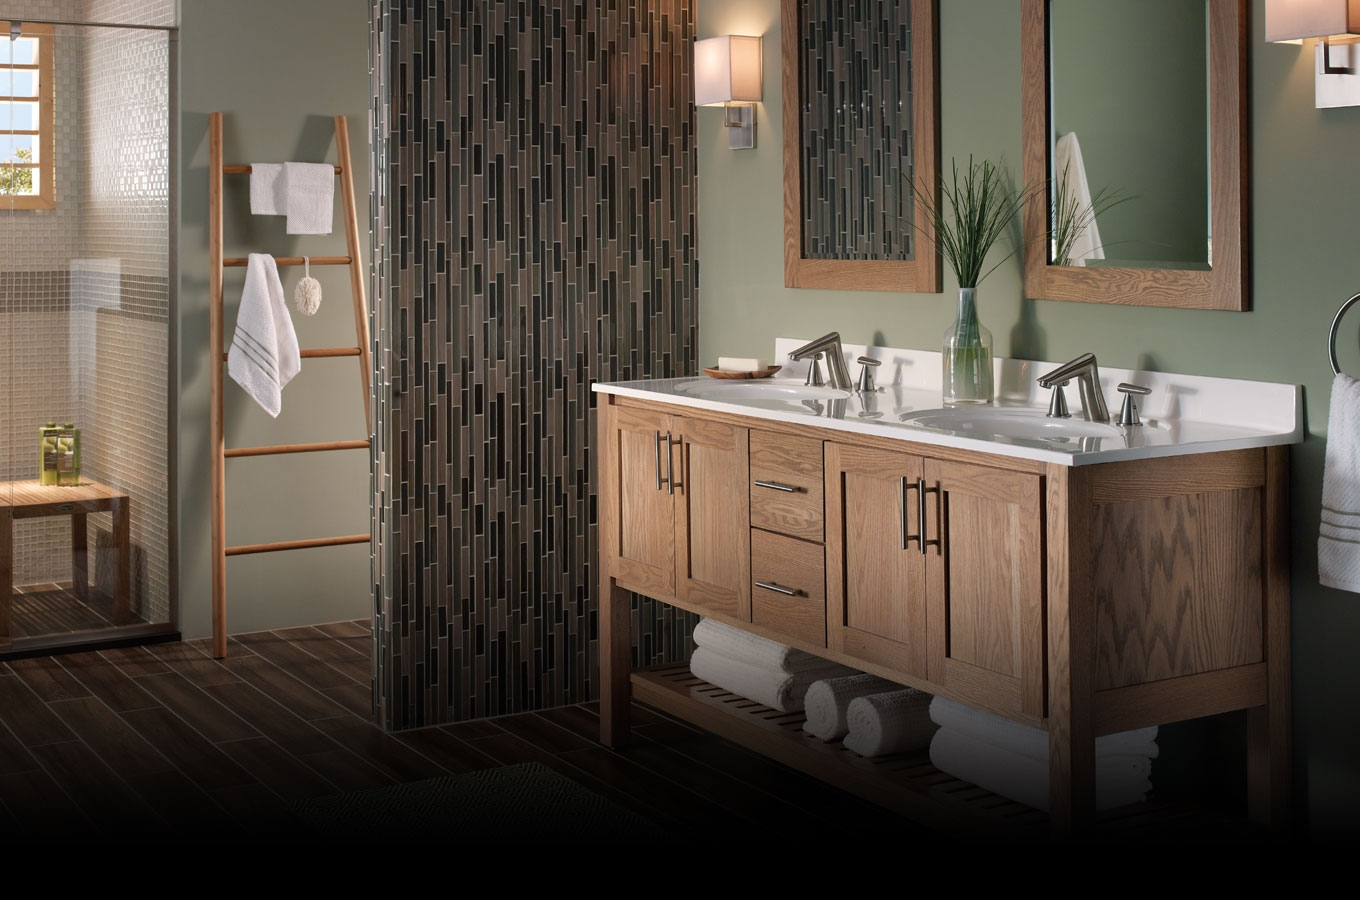 Birch Bathroom Cabinets1360 X 900